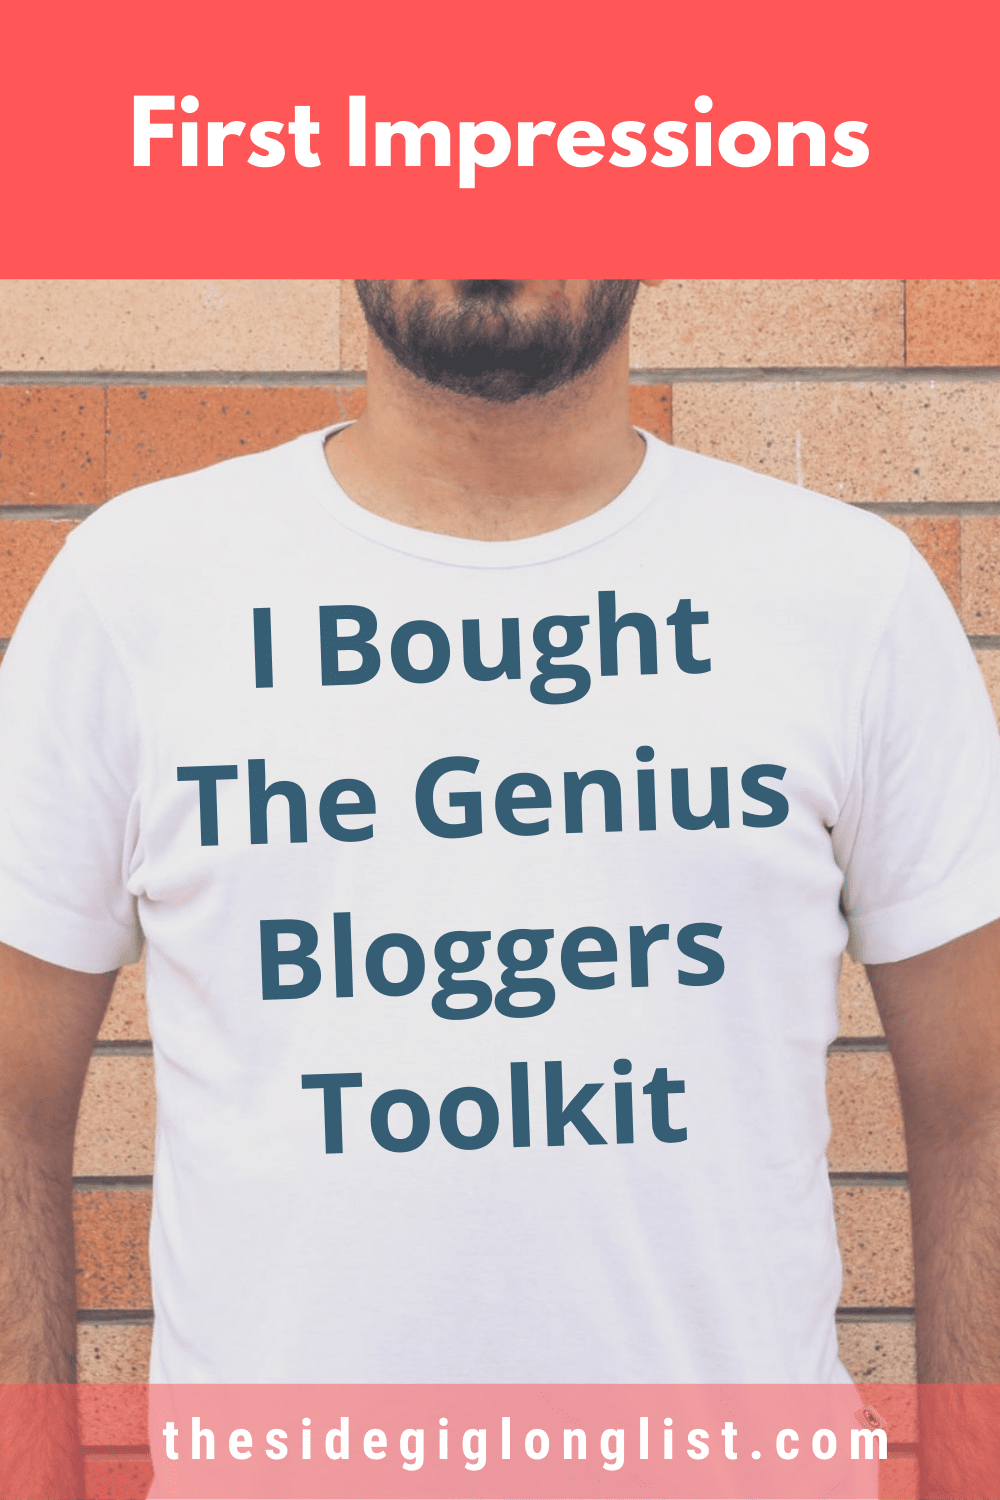 I Bought the Genius Bloggers Toolkit